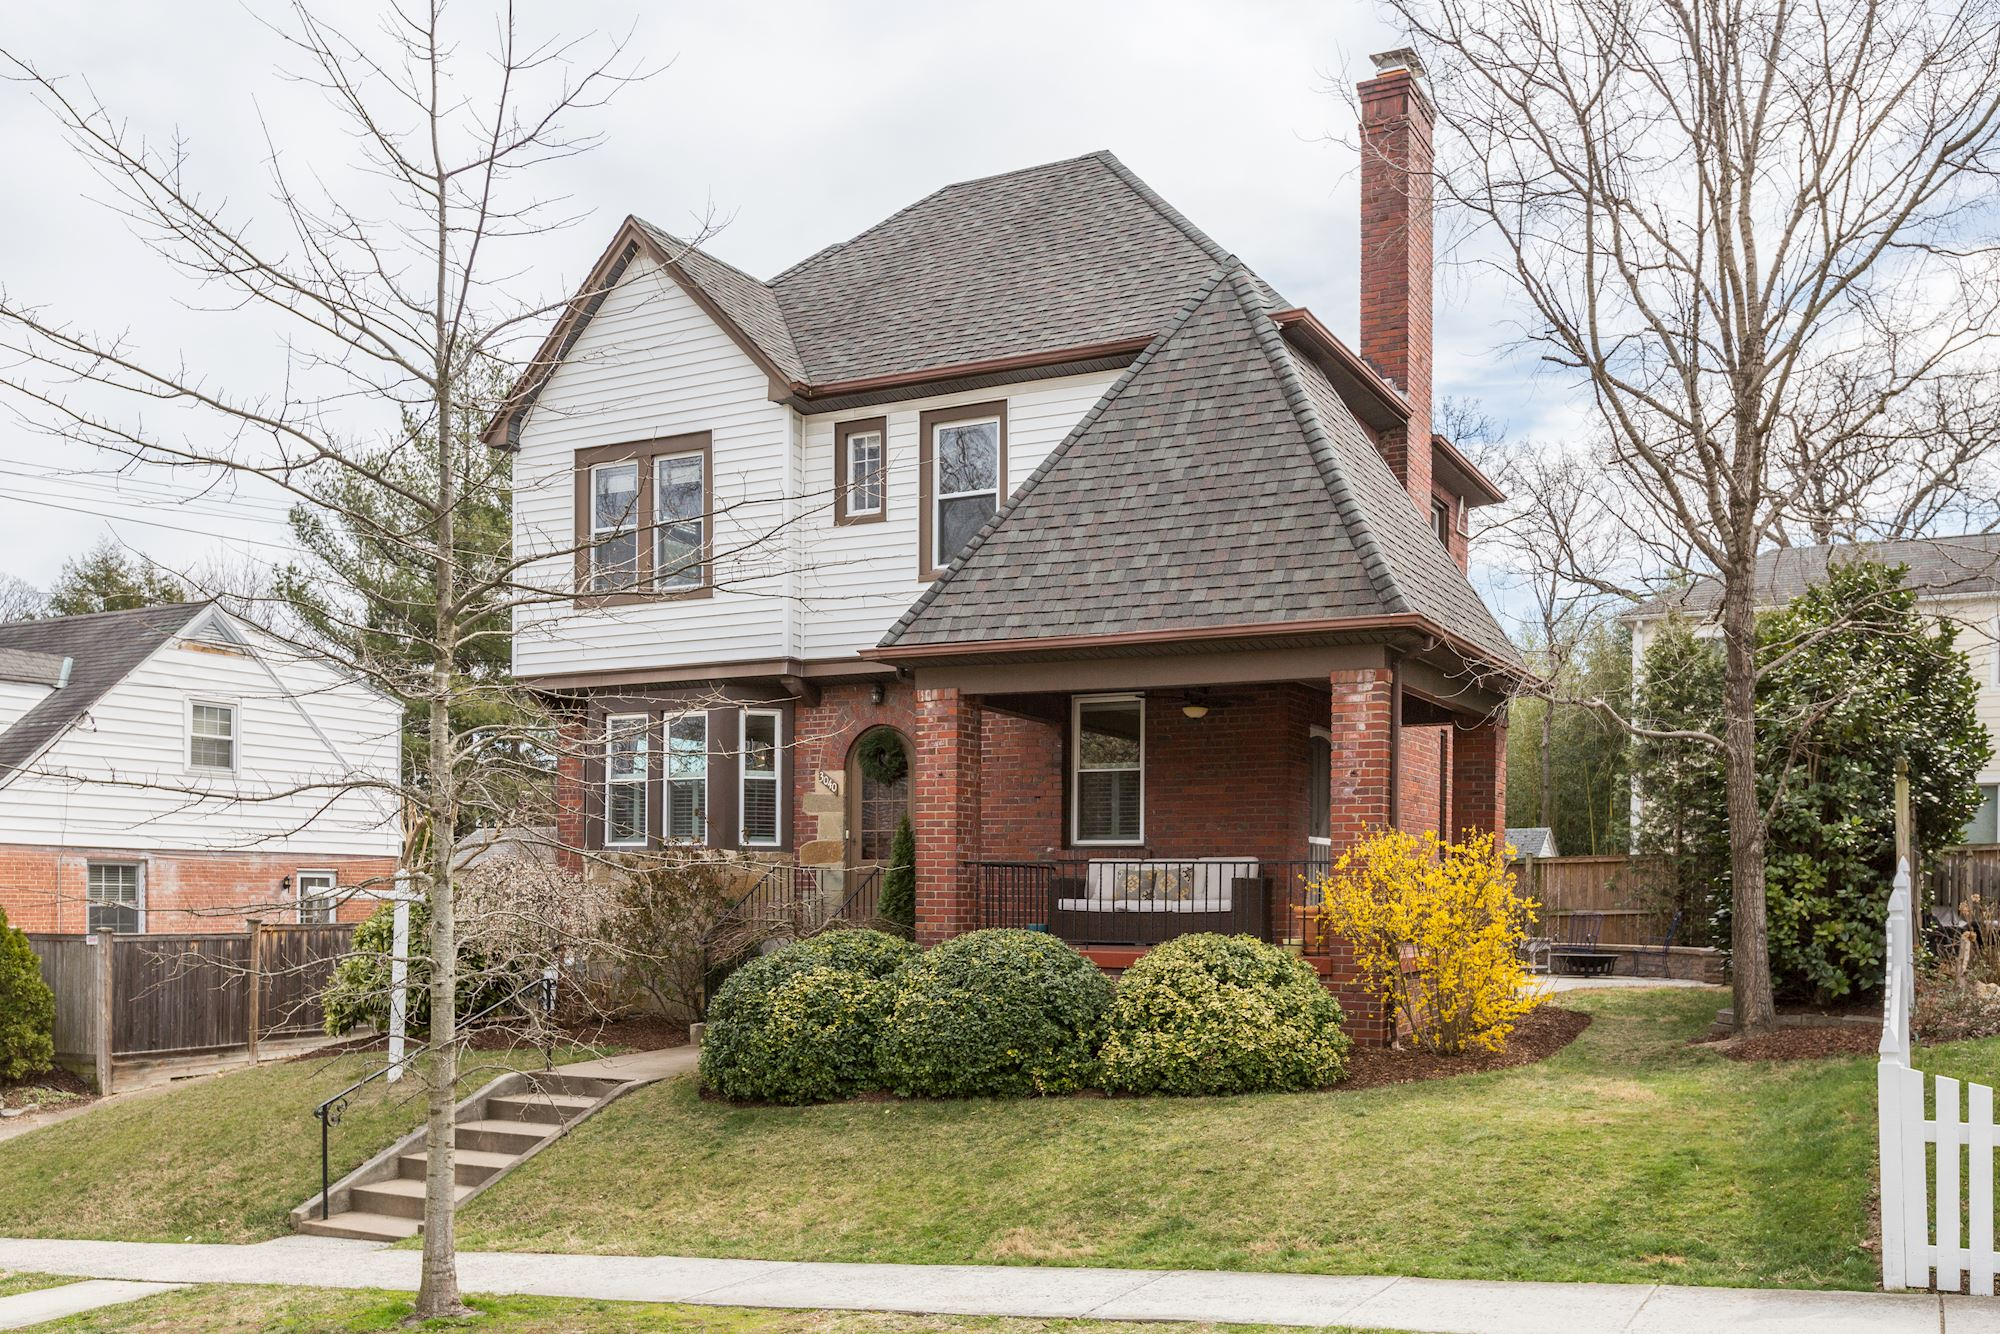 SOLD:4 Level Brick and Stone Tudar Home